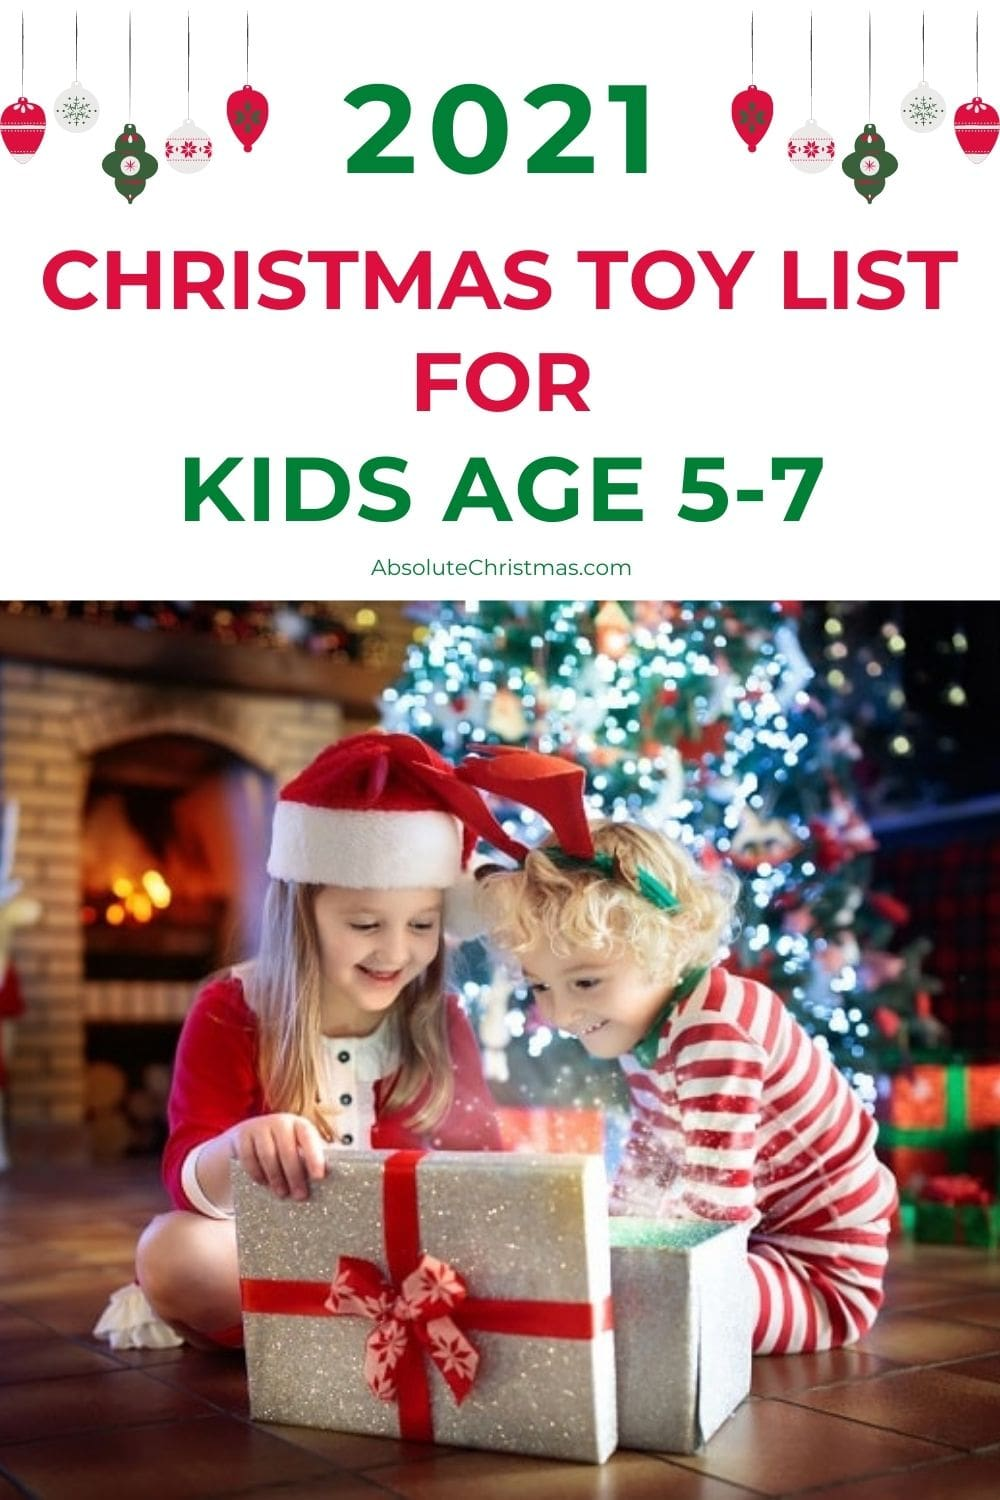 Top Christmas Toys for Grade Schoolers - Hot New Holiday Toys for Kids Age 5-7